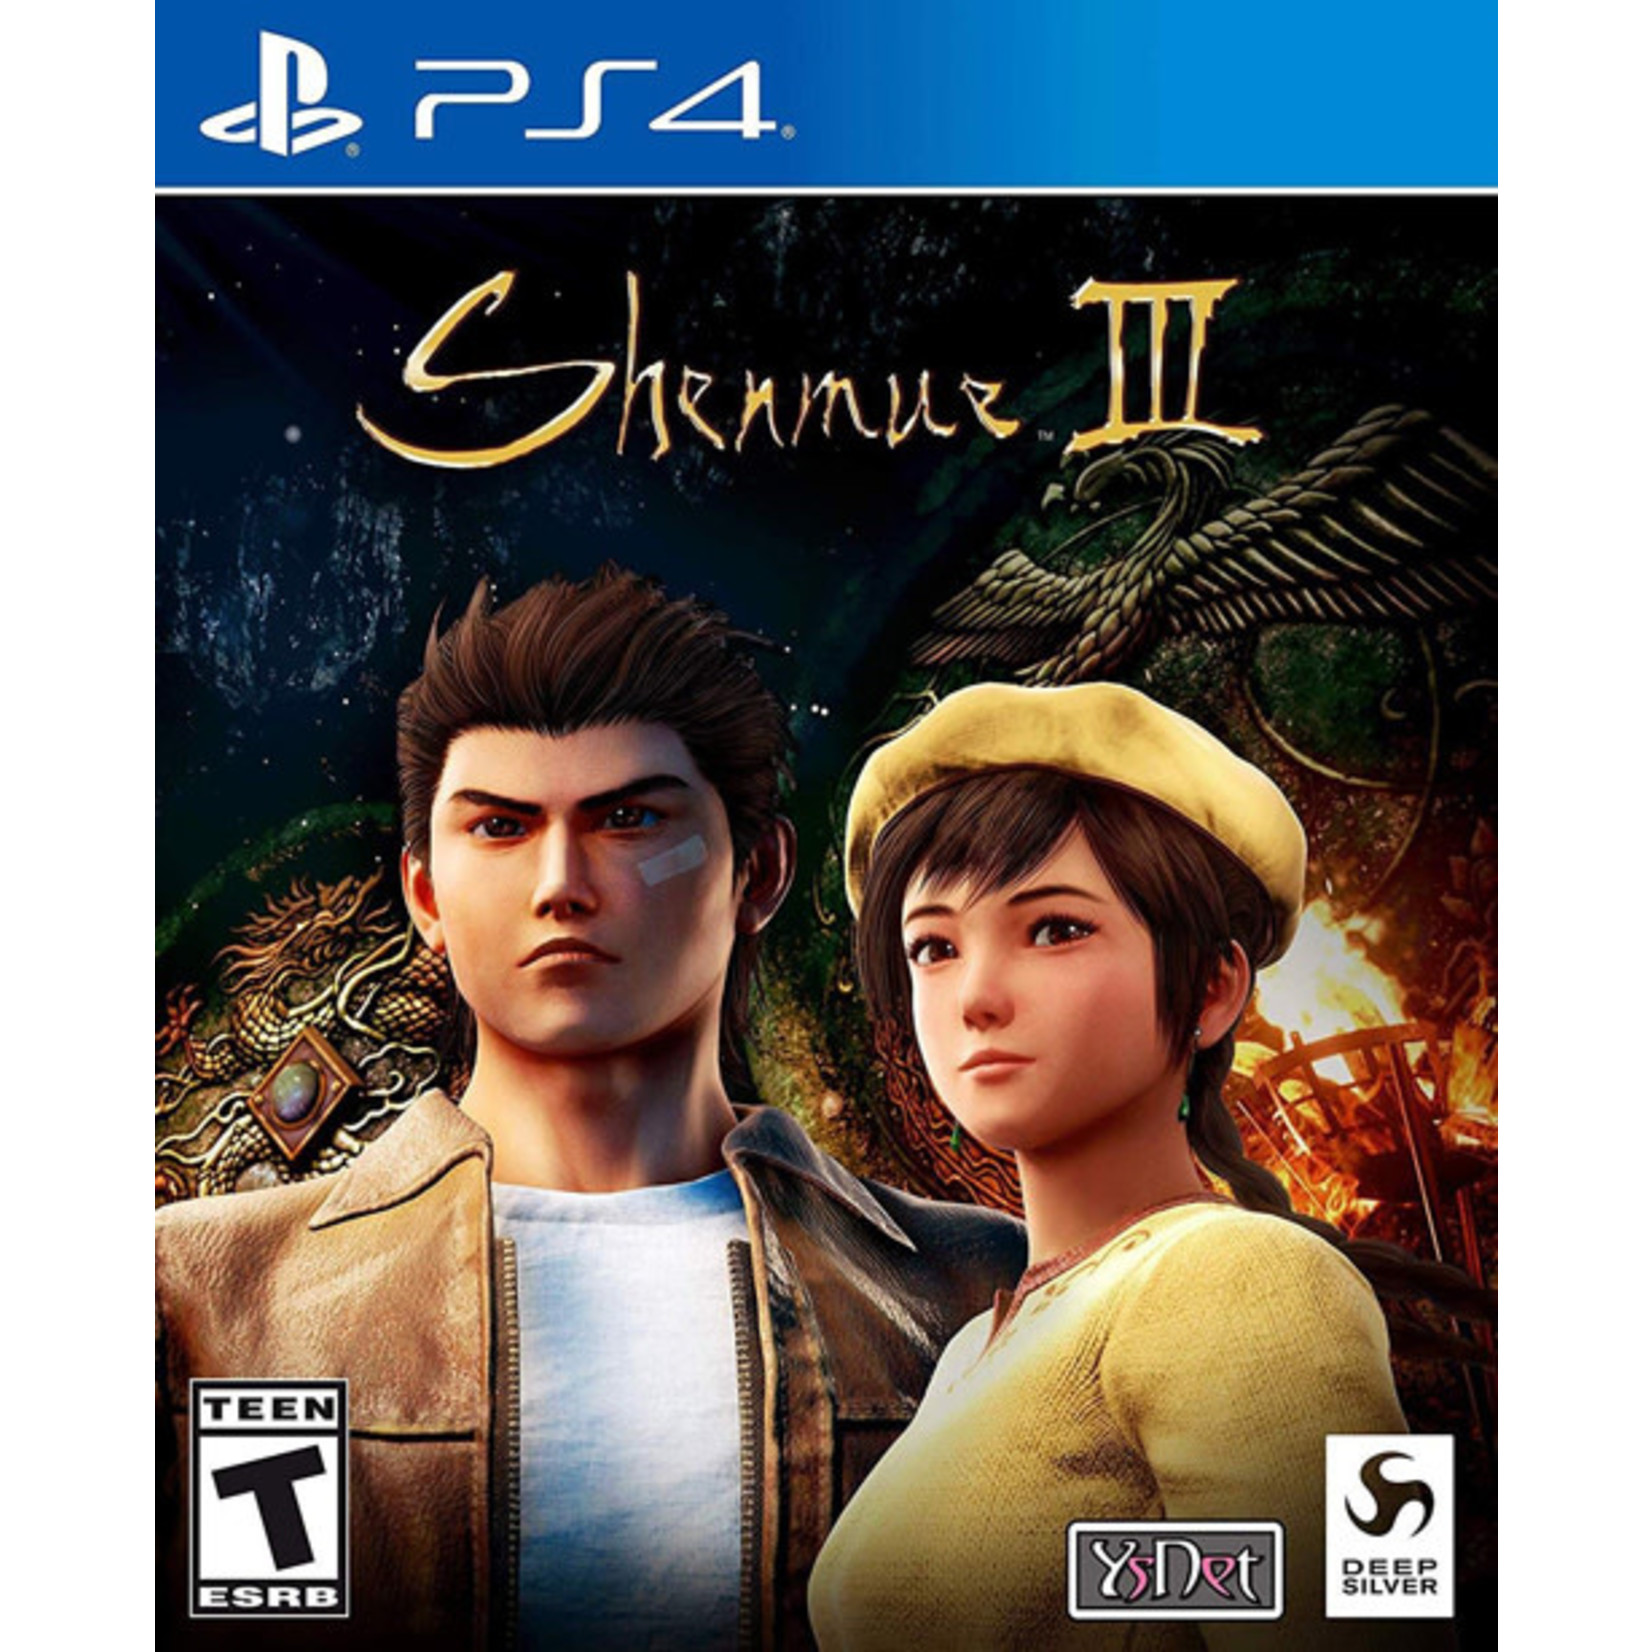 PS4-Shenmue III